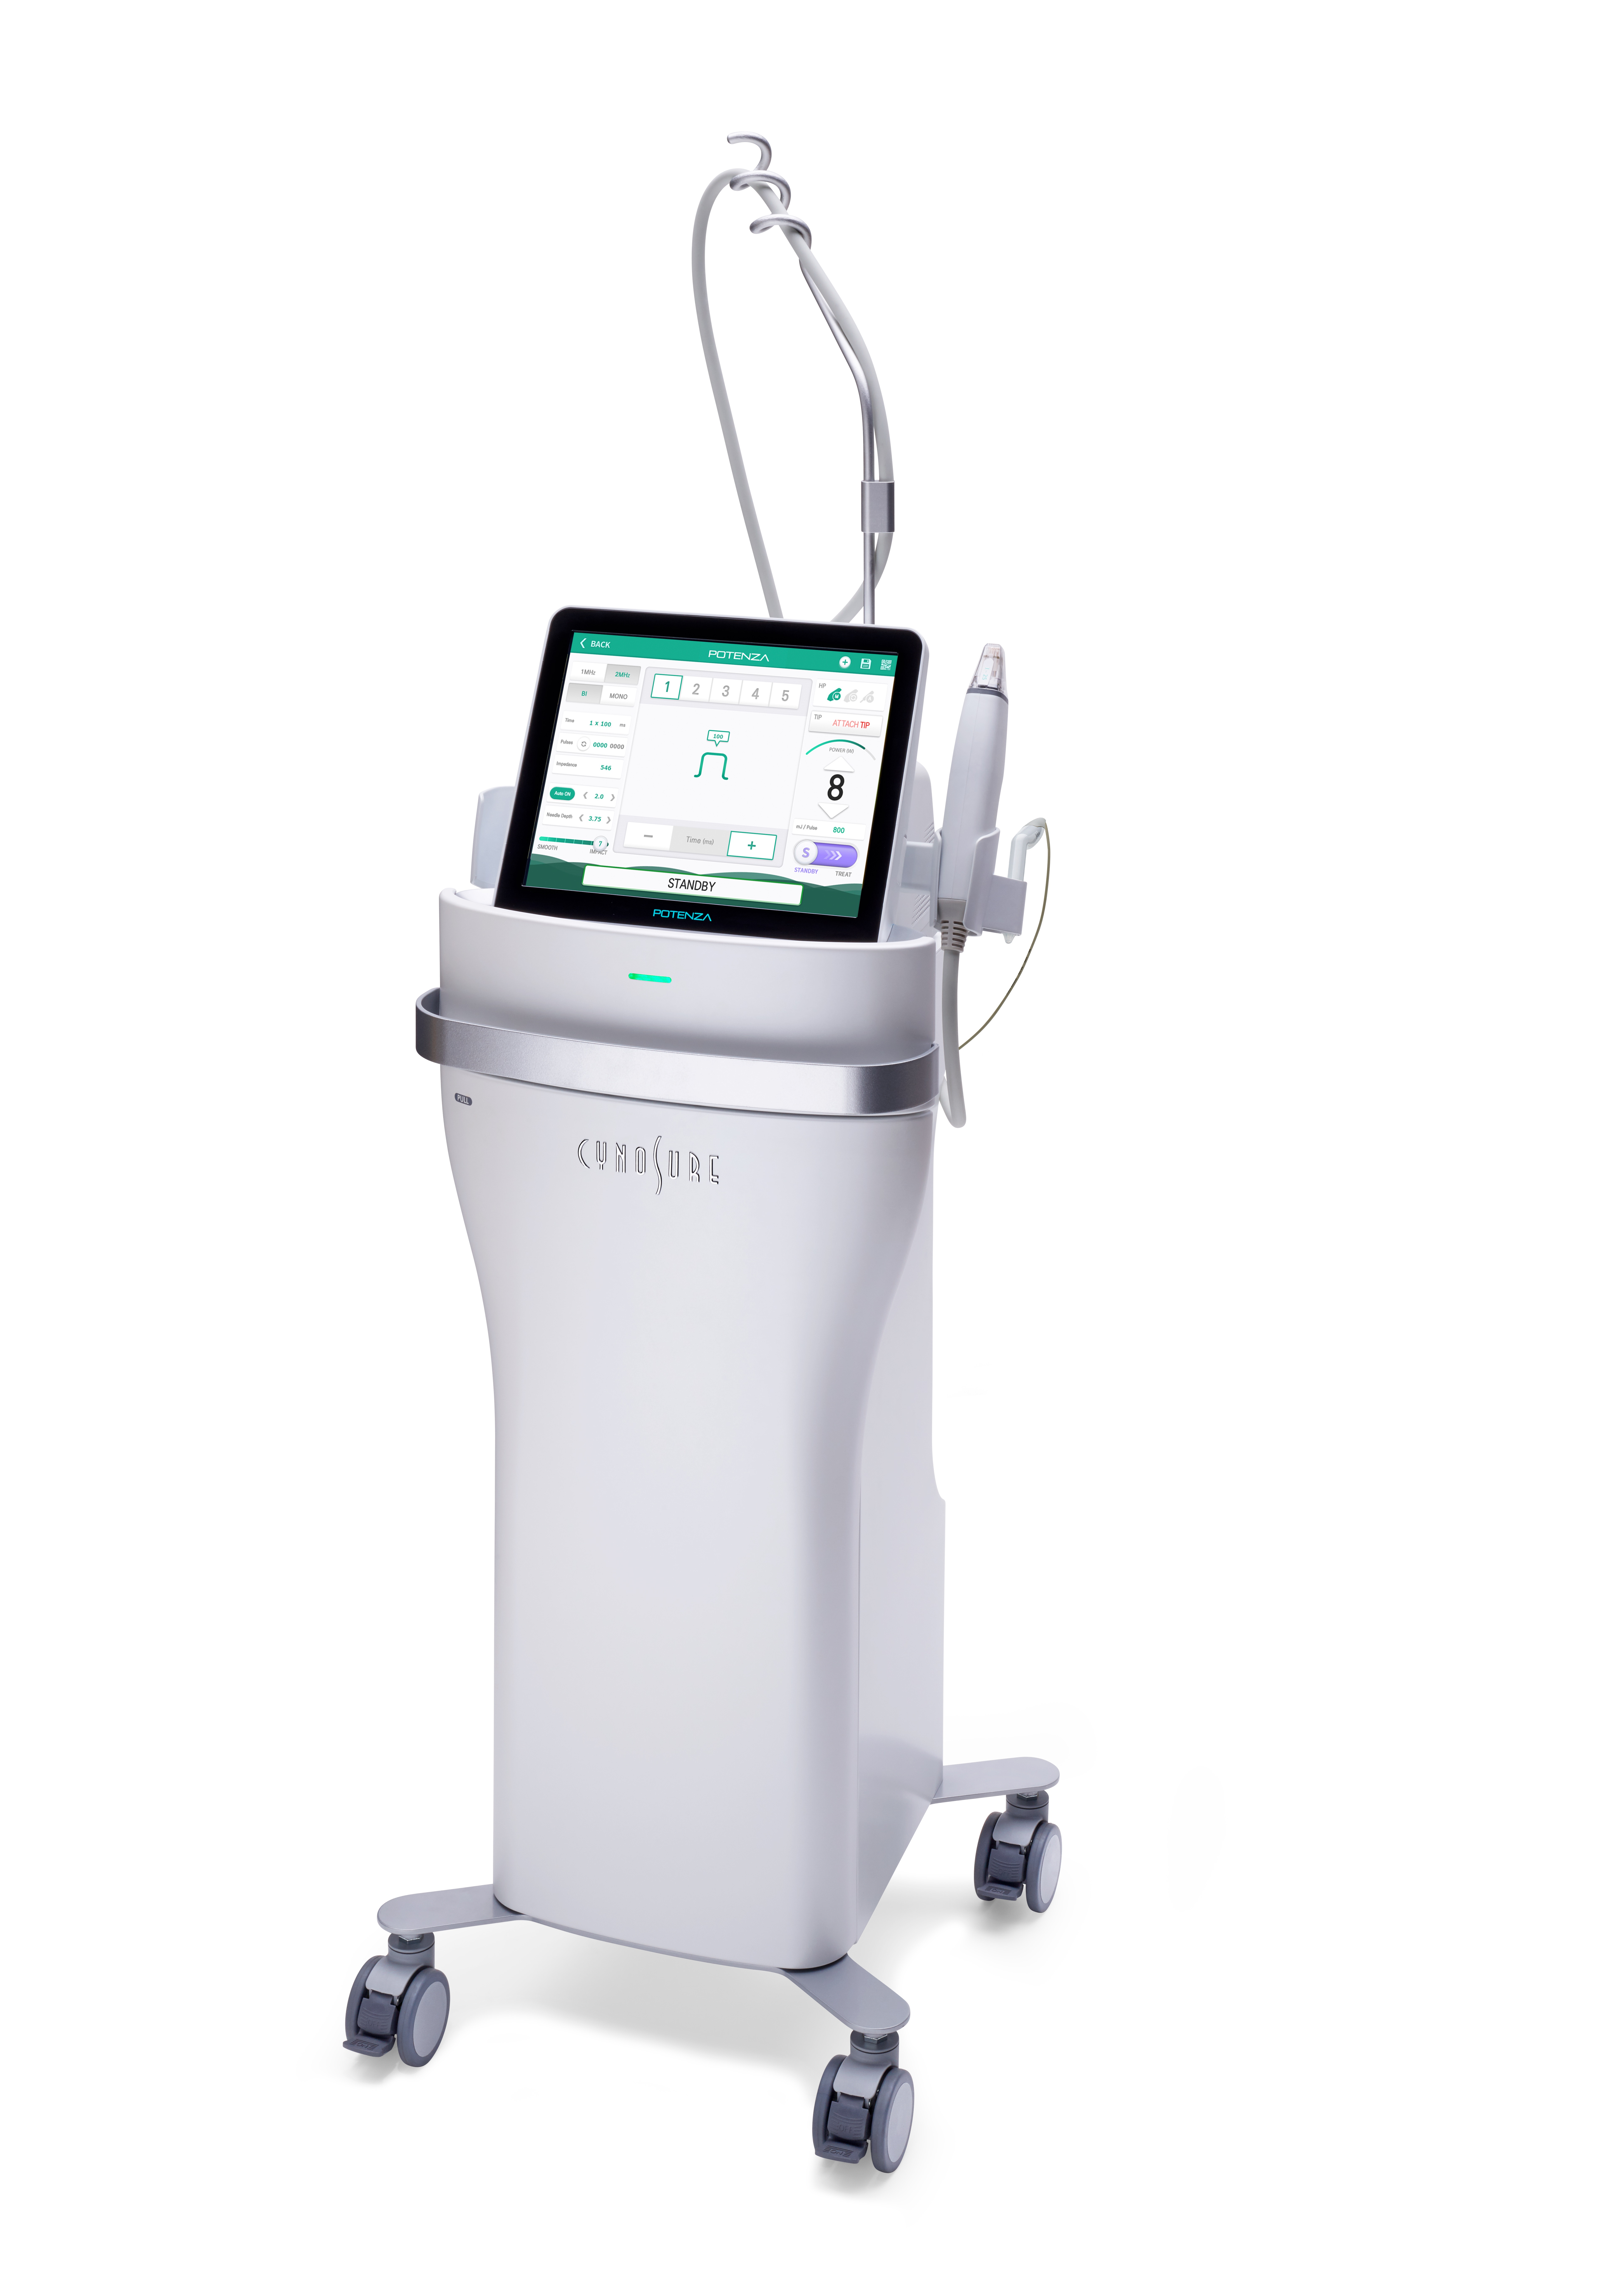 Cynosure's Four-mode RF Microneedling Device Cleared for Marketing image